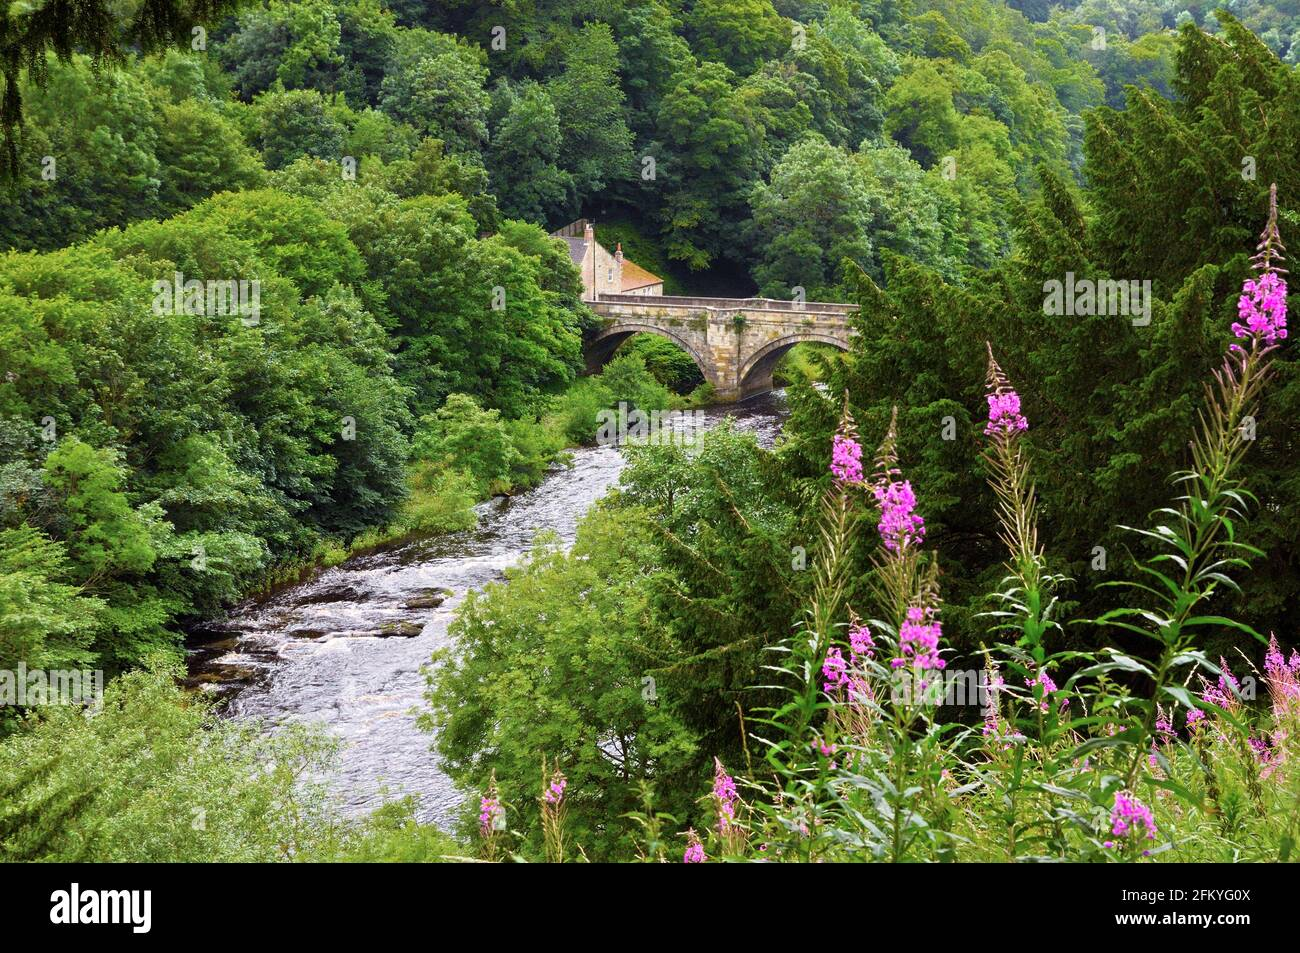 Green Bridge and River Swale surrounded by lush trees with bright pink rosebay willowherb in the foreground, Richmond, North Yorkshire, England, UK Stock Photo